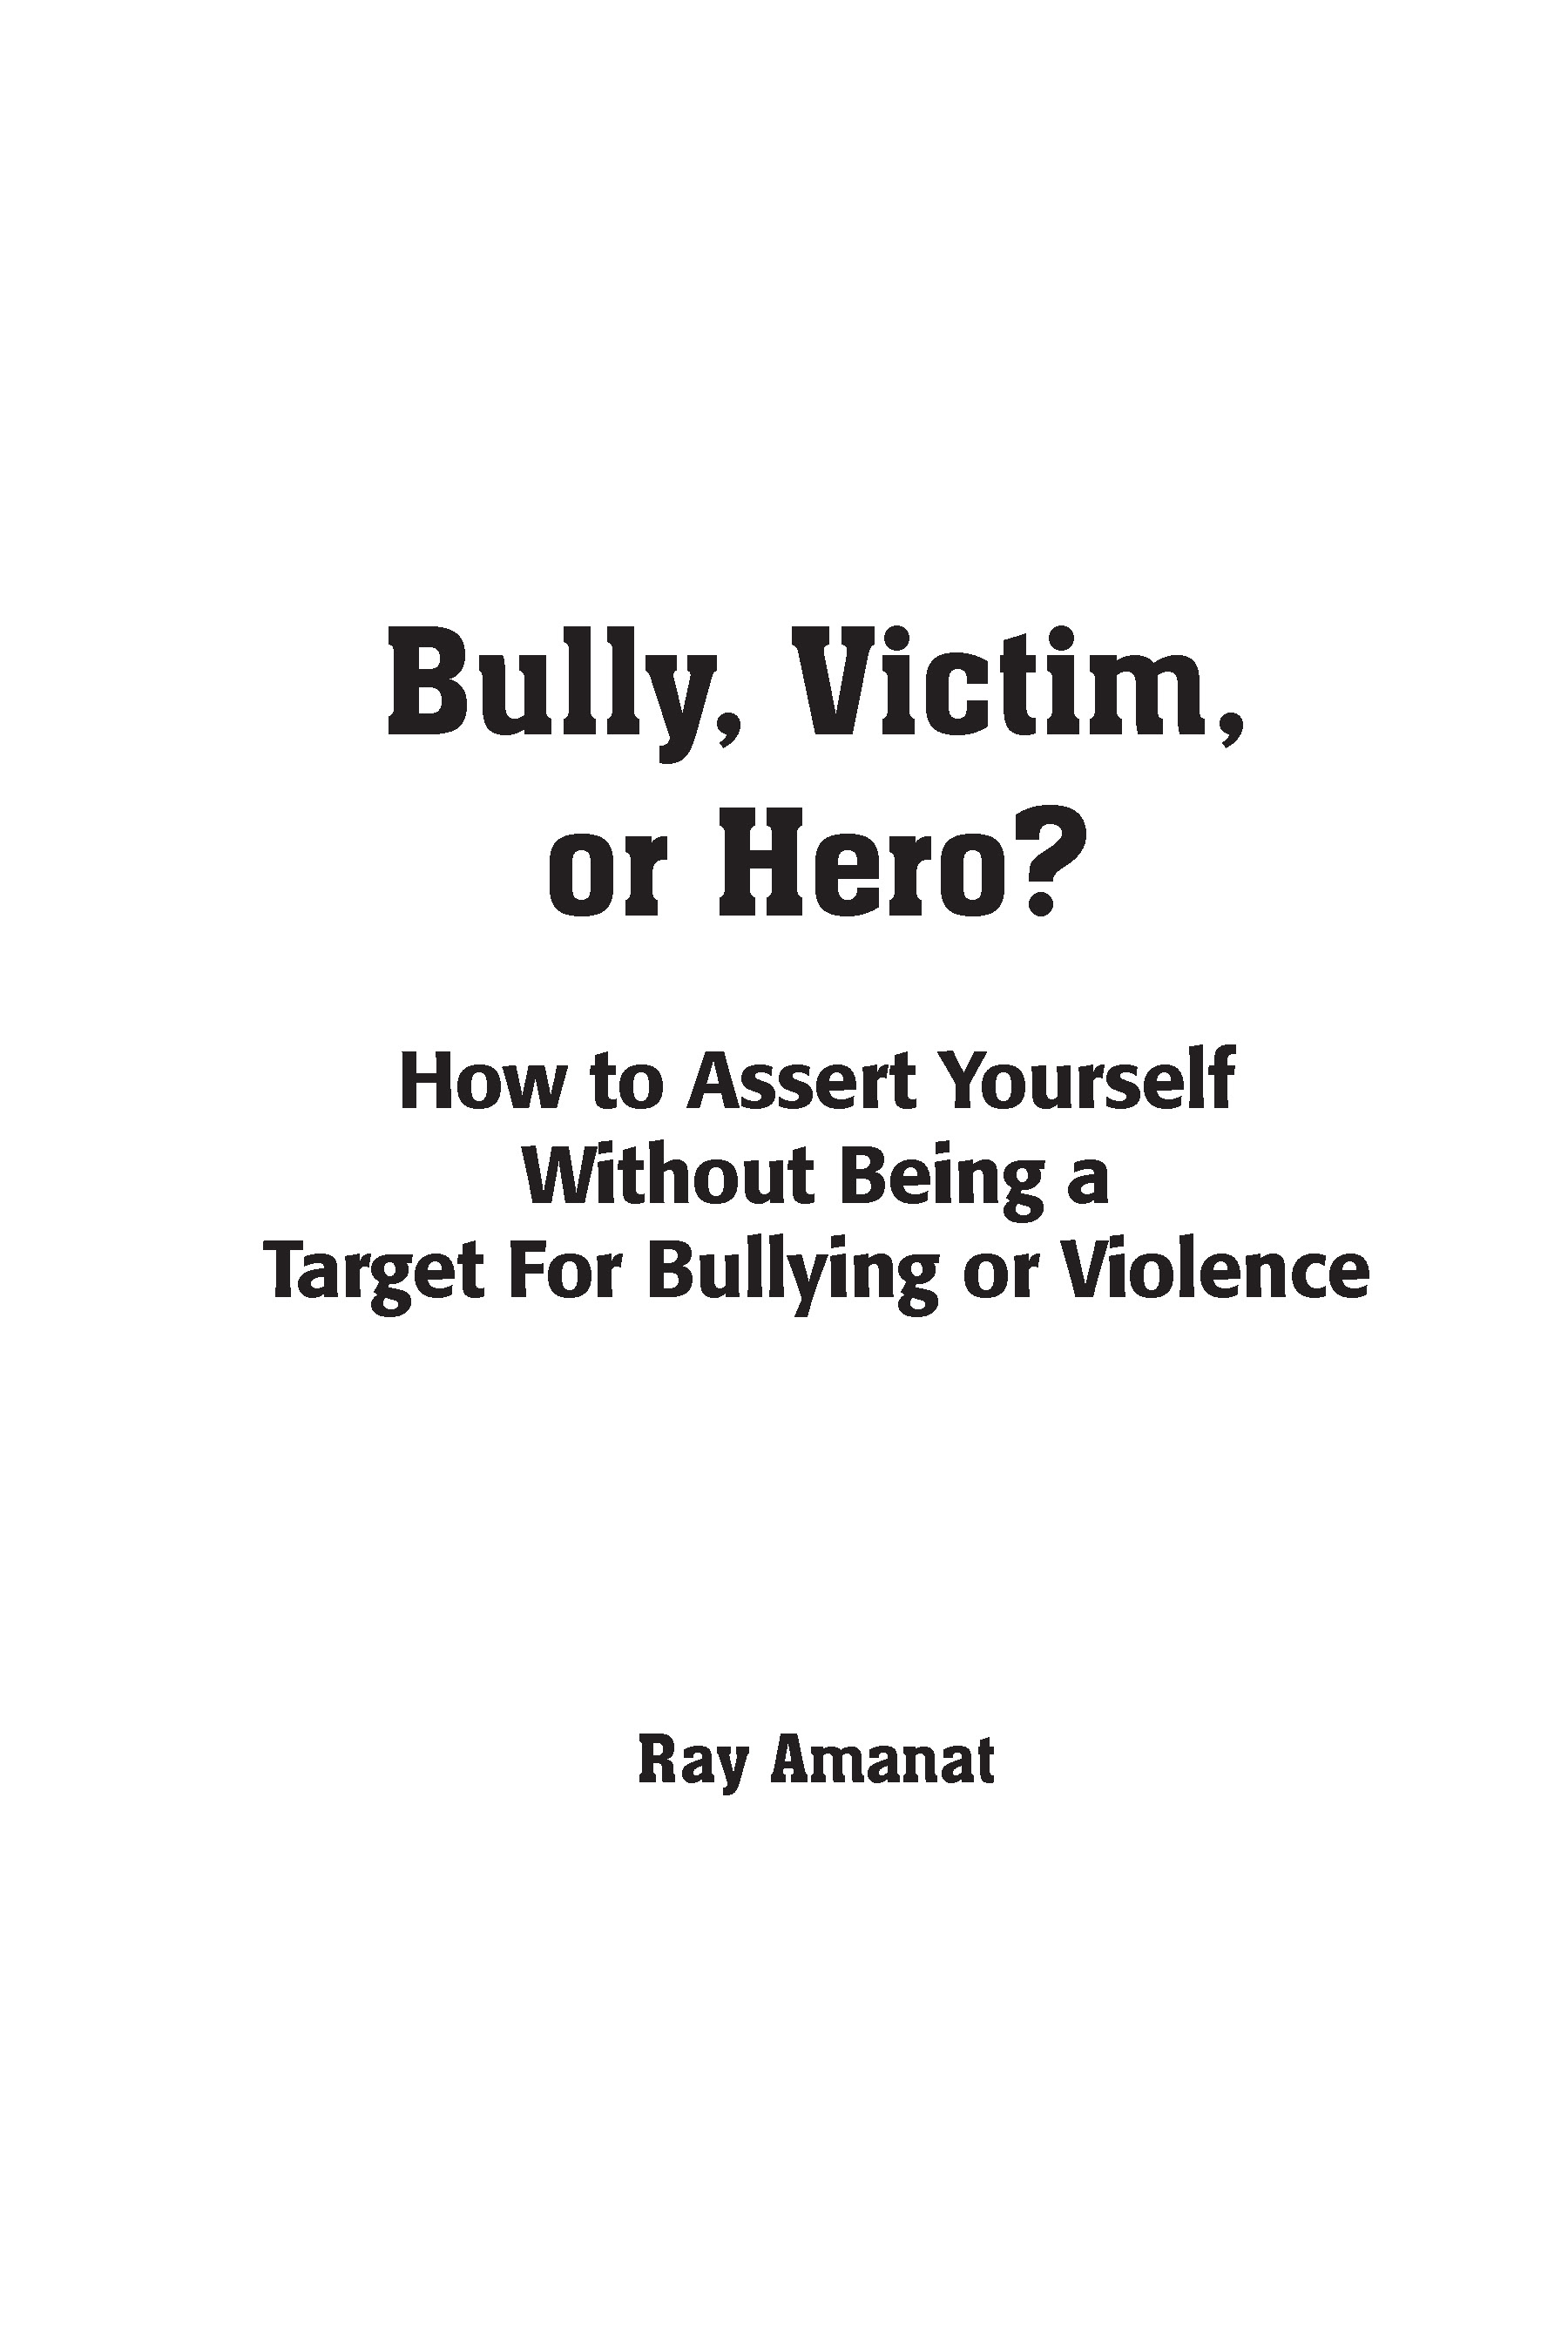 Bully, Victim, or Hero: How to Assert Yourself by Ray Amanat